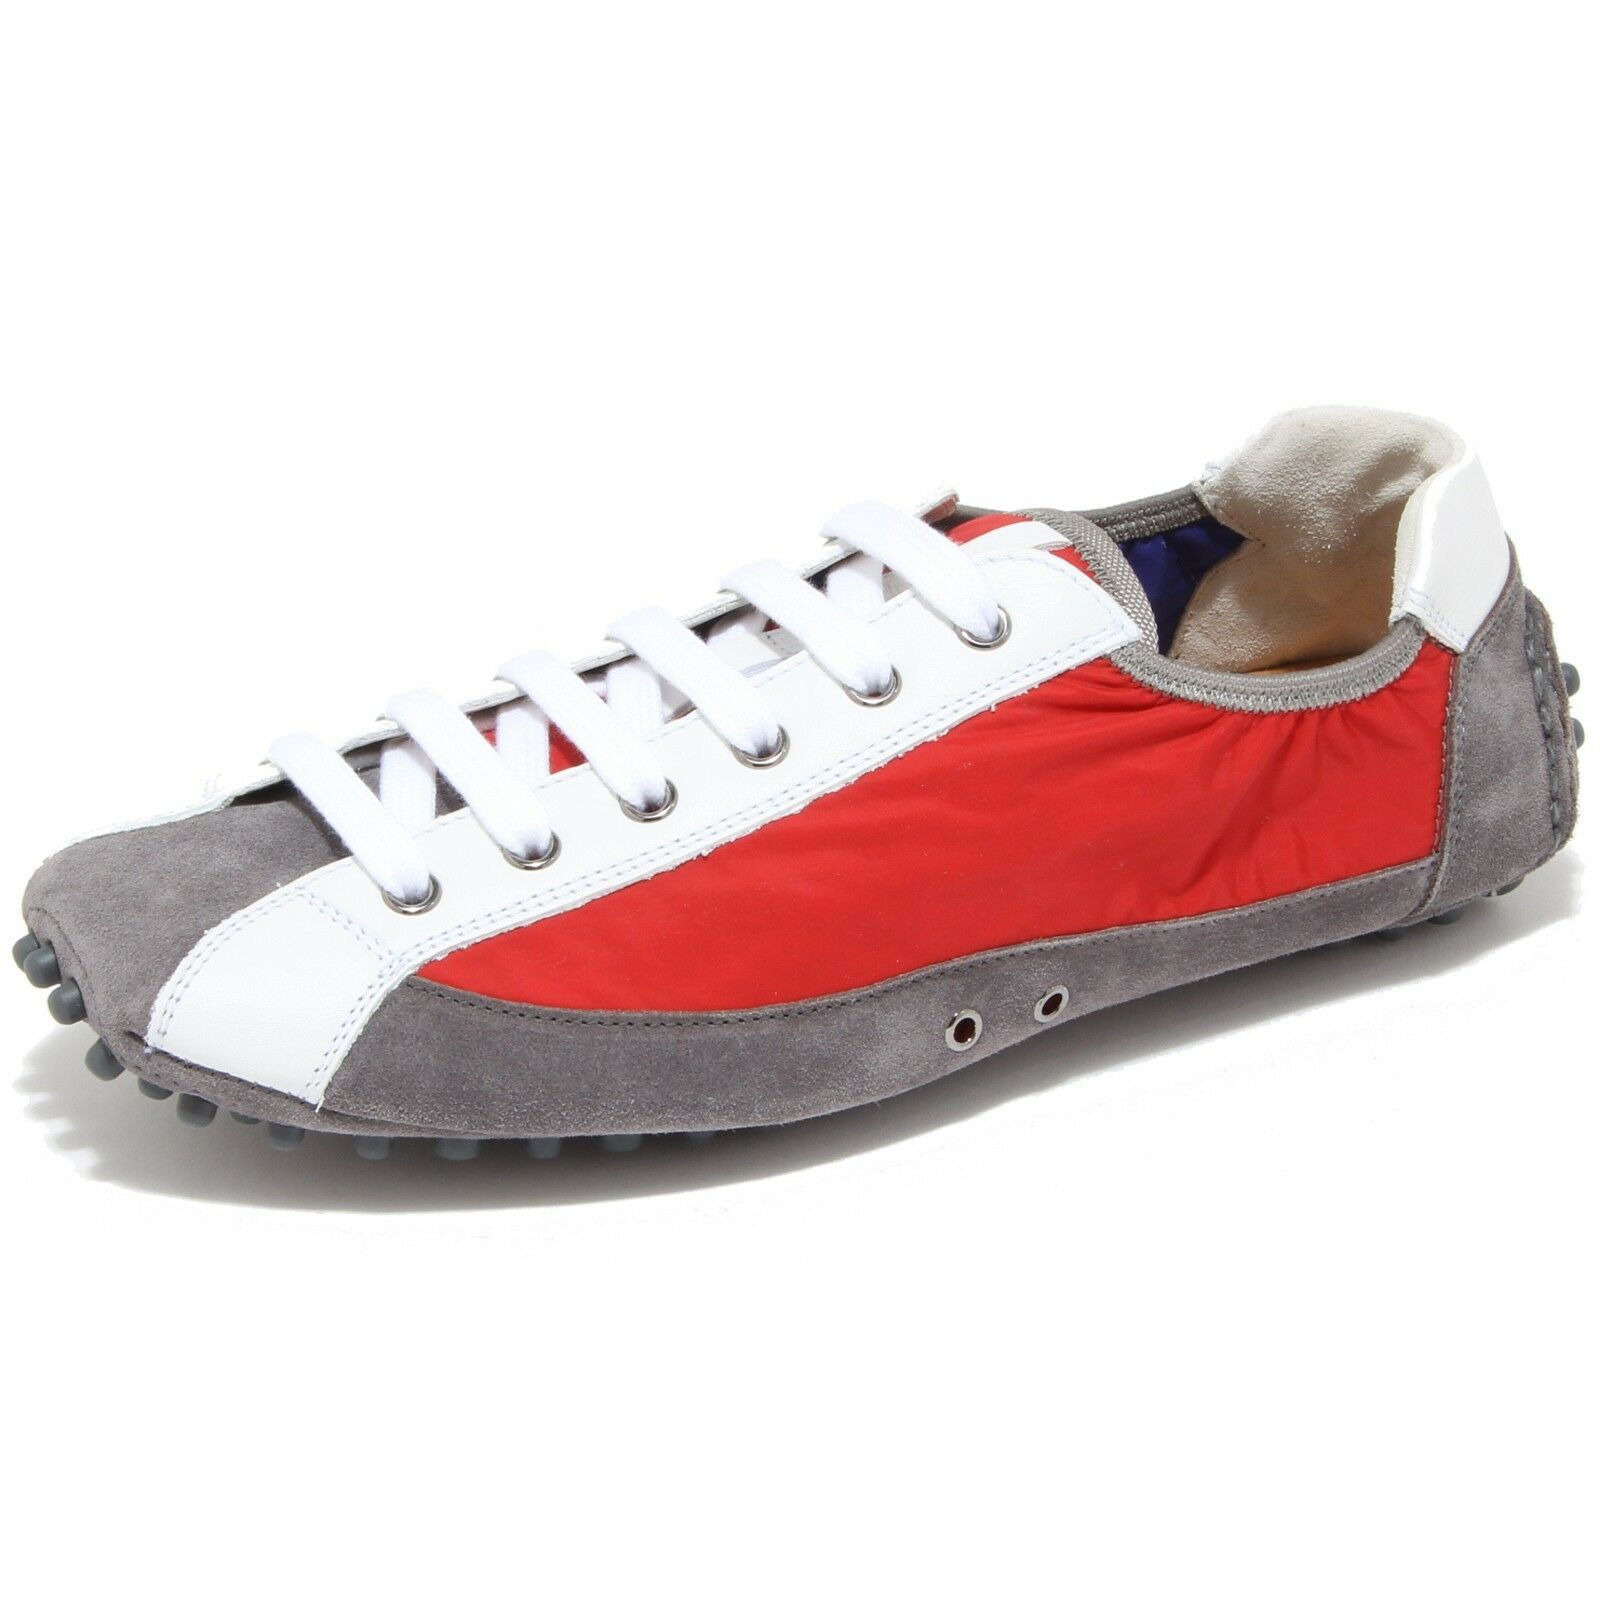 7661L sneakers uomo CAR SHOE men nylon scamosciato scarpe schuhe men SHOE a9b417